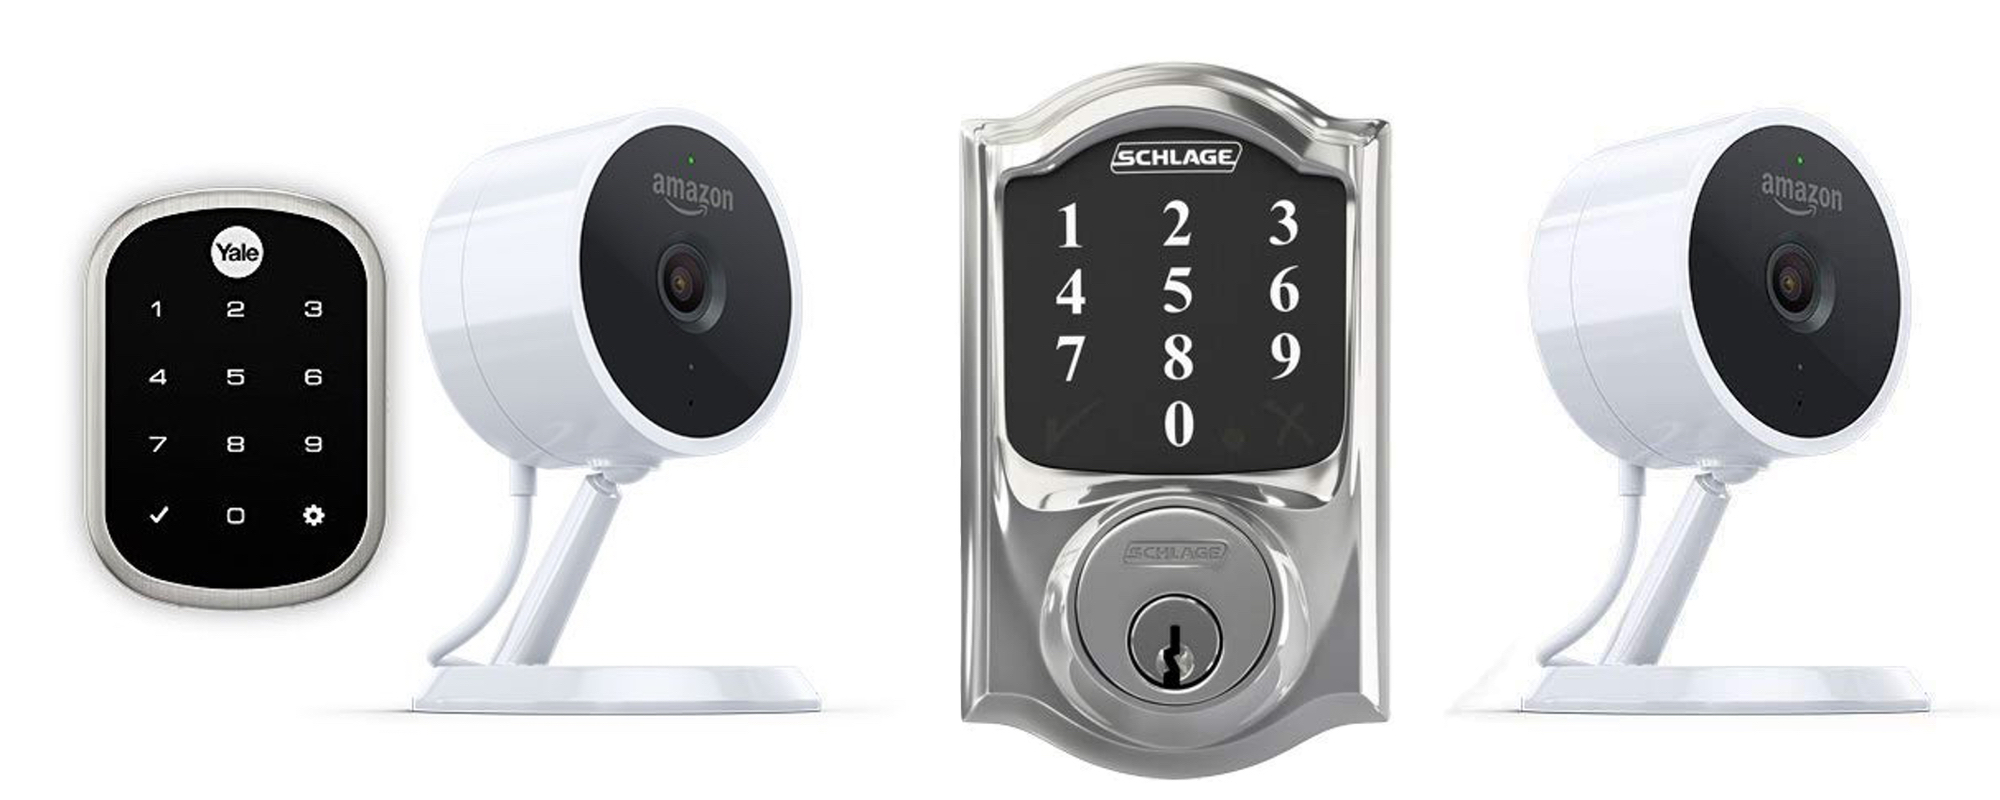 Key by Amazon getting started locks